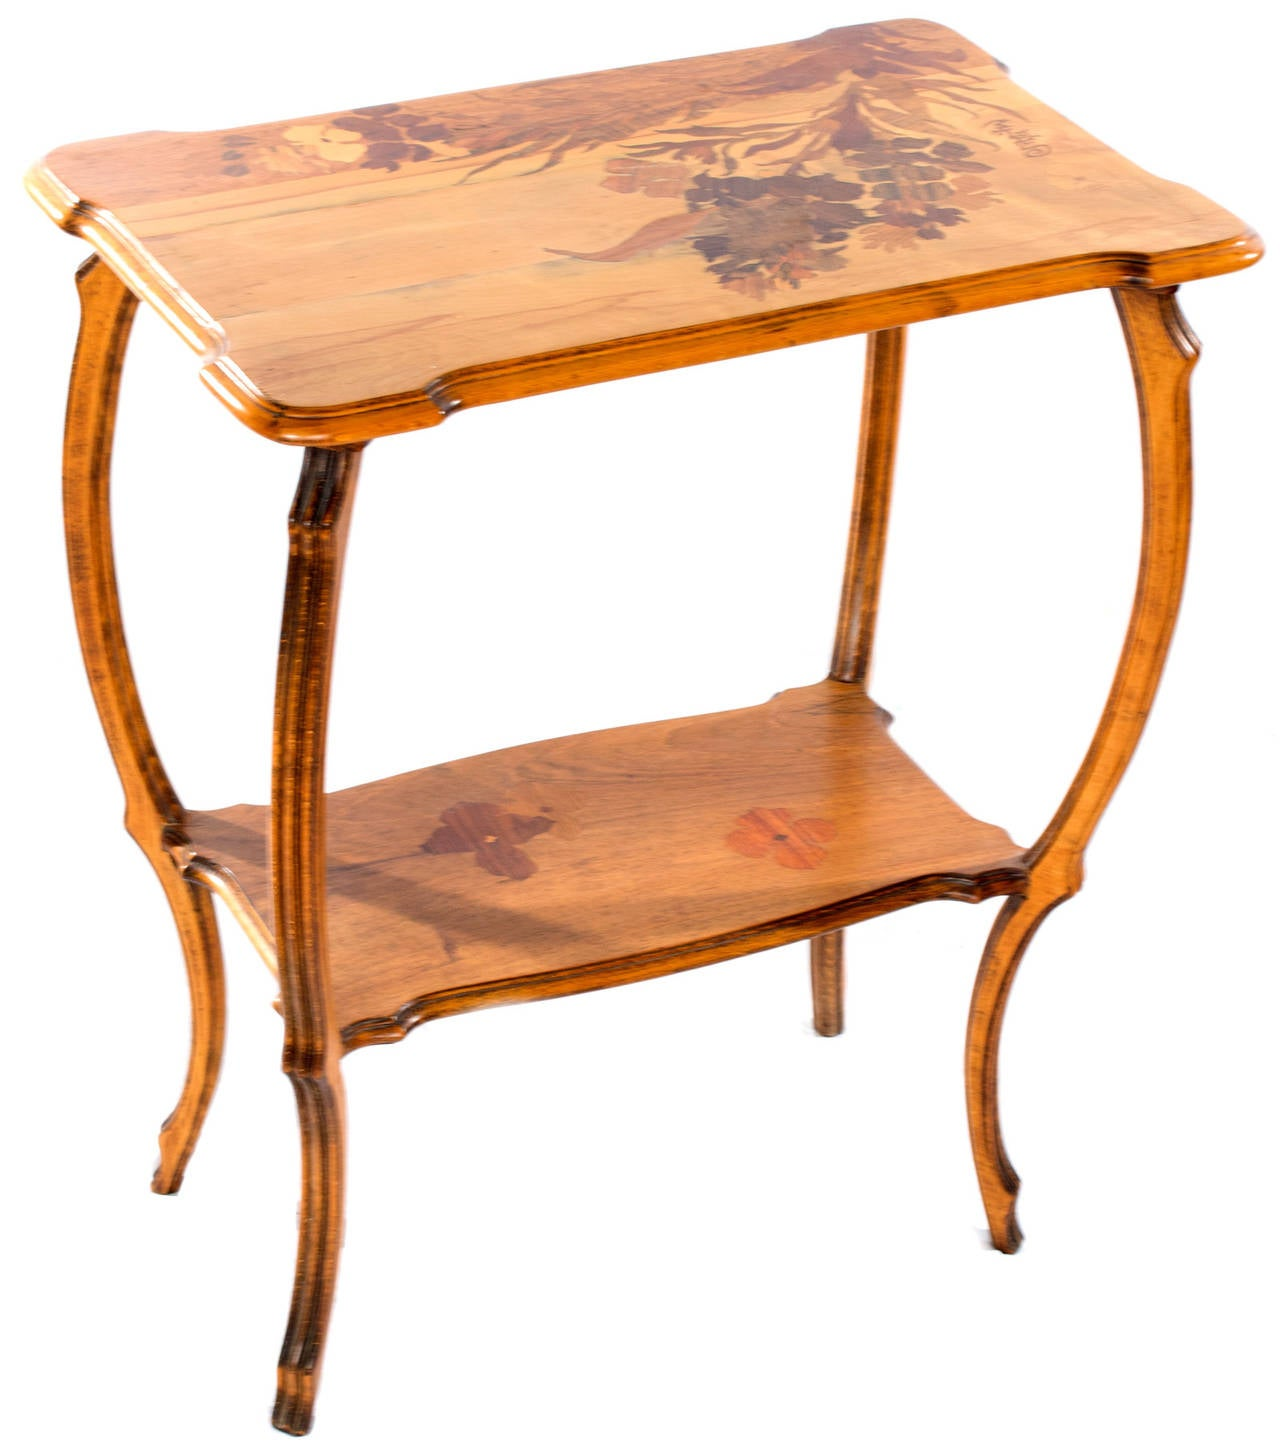 Mile Gall Art Nouveau Side Table For Sale At 1stdibs